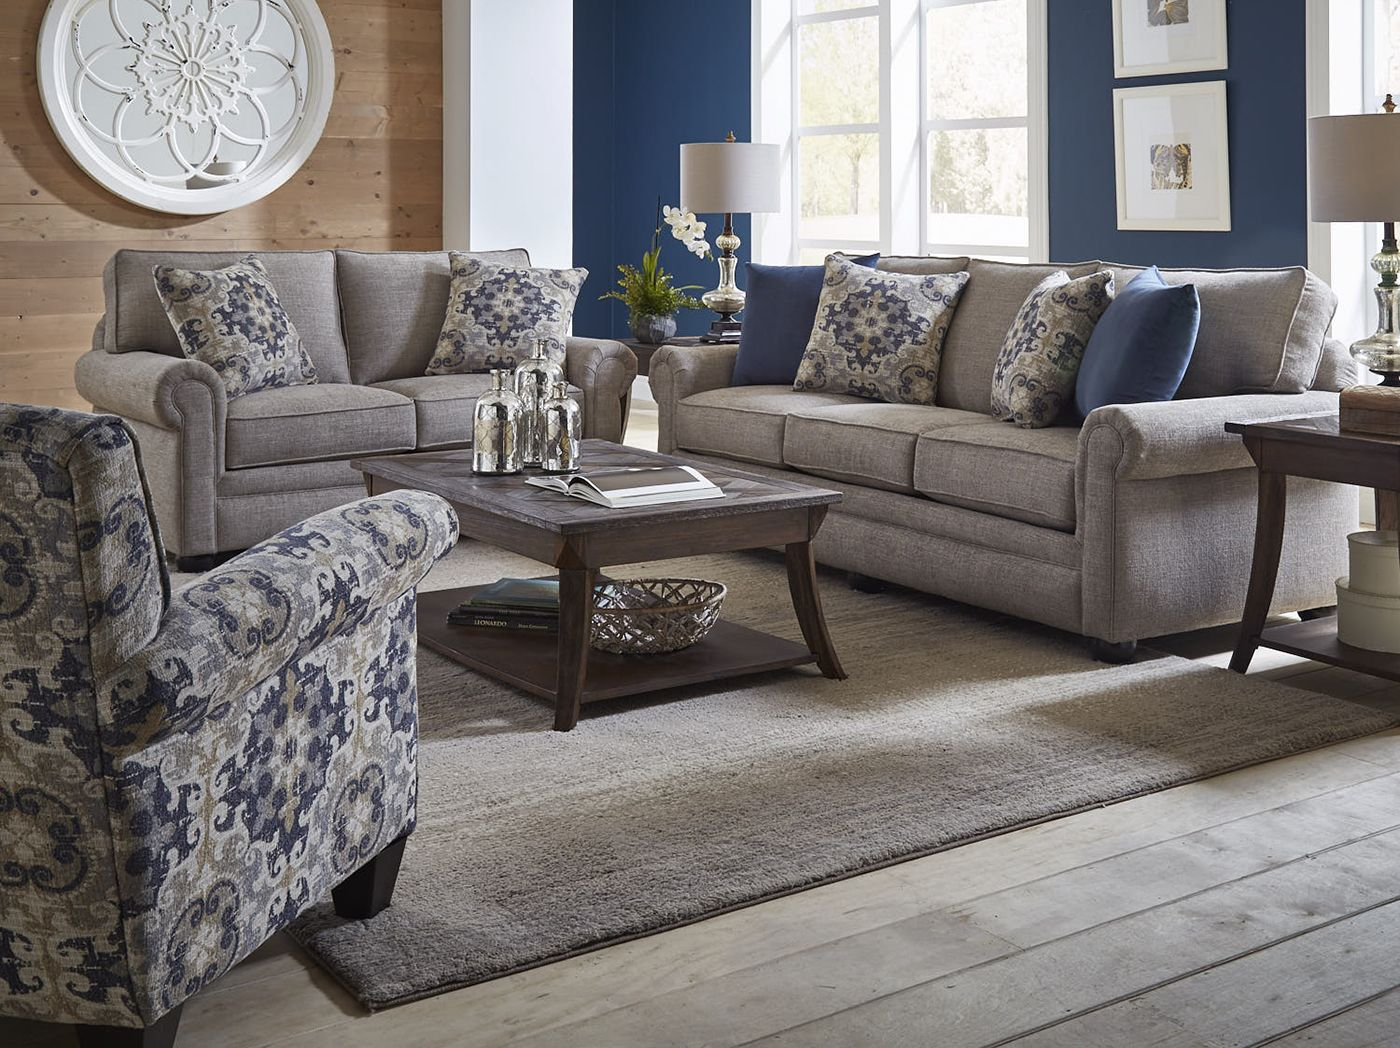 Picco Sofa The Picco Collection S Soft Grey Blue Color Palette And Roll Arm Styling Will Blend Perf Taupe Living Room Living Room Sets Cheap Living Room Sets #taupe #living #room #ideas